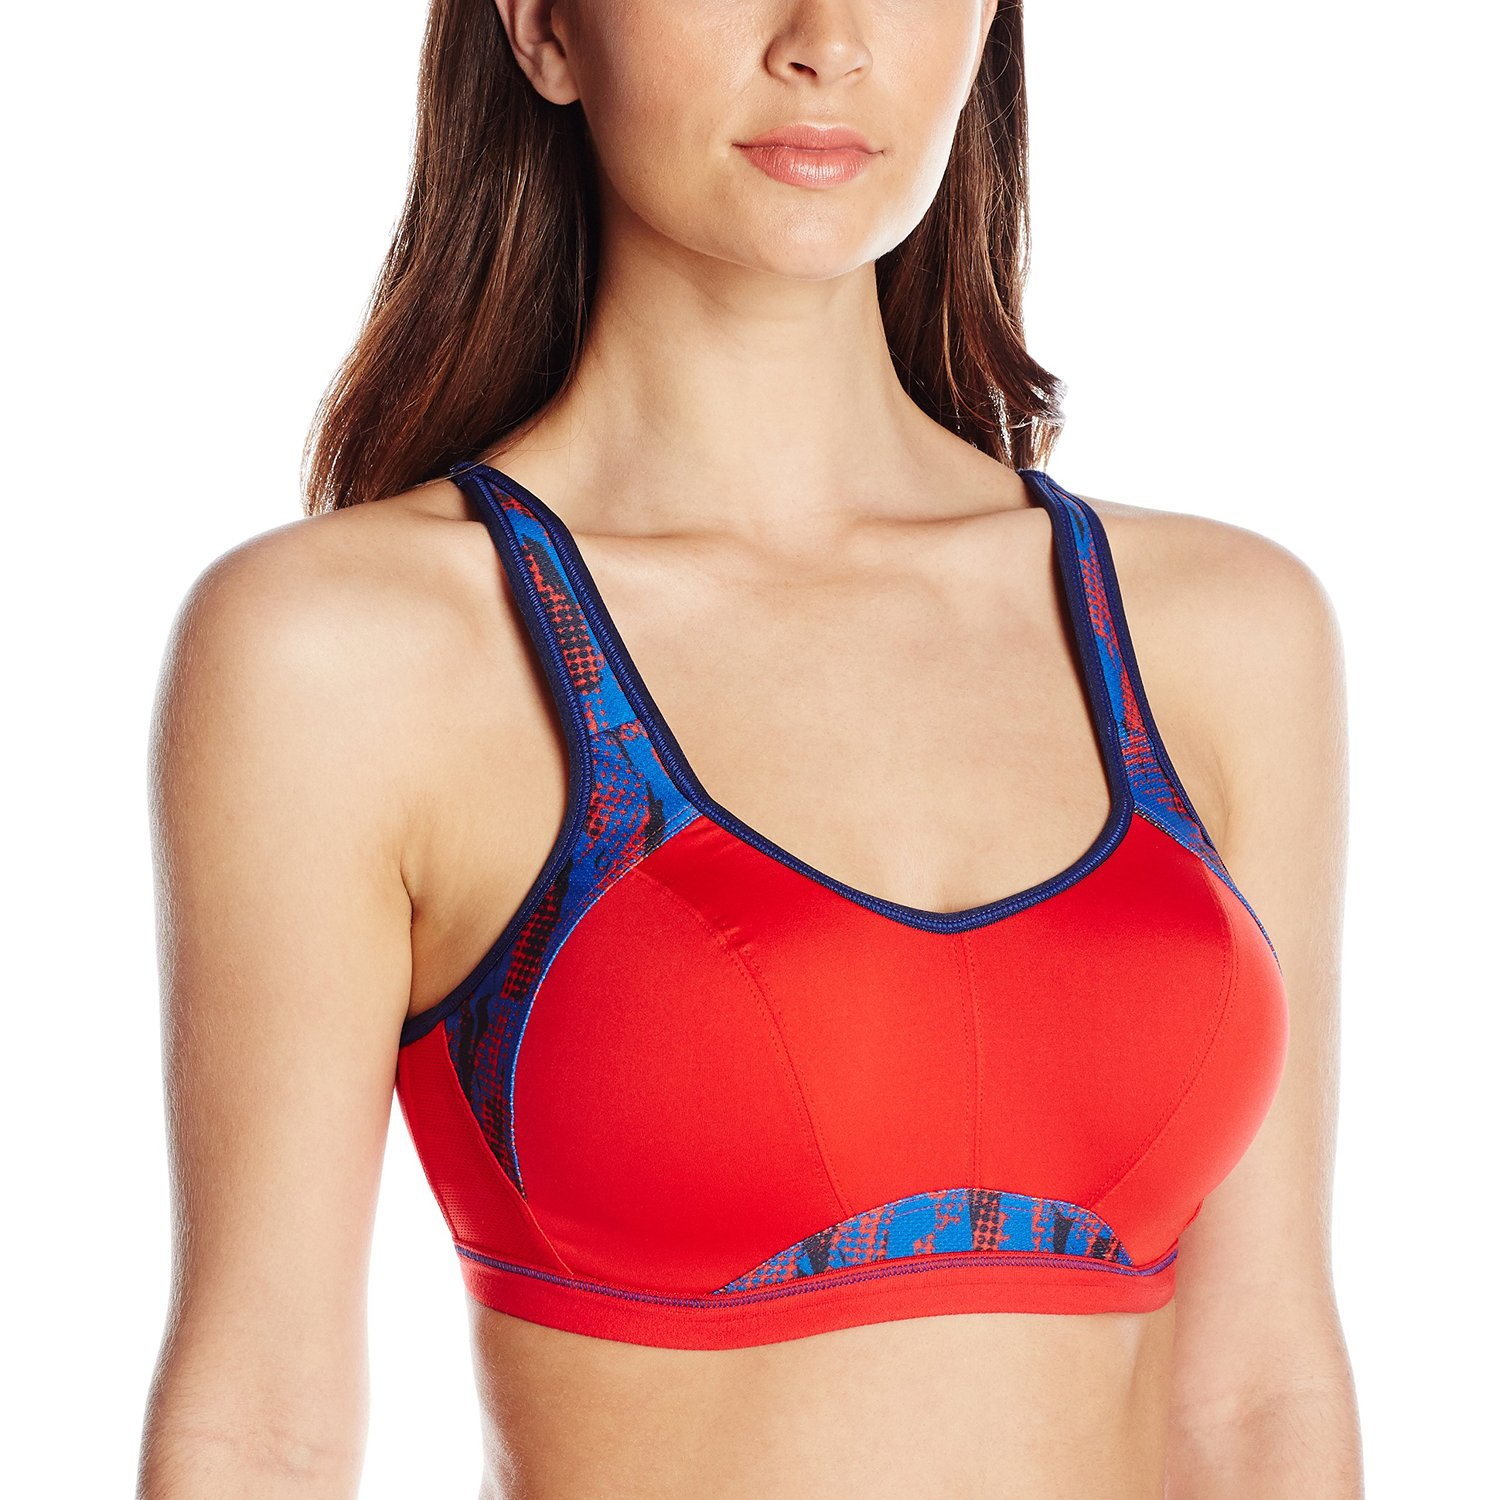 Freya Active Sports Bras Epic 4004 Underwired Moulded Maximum Support Various